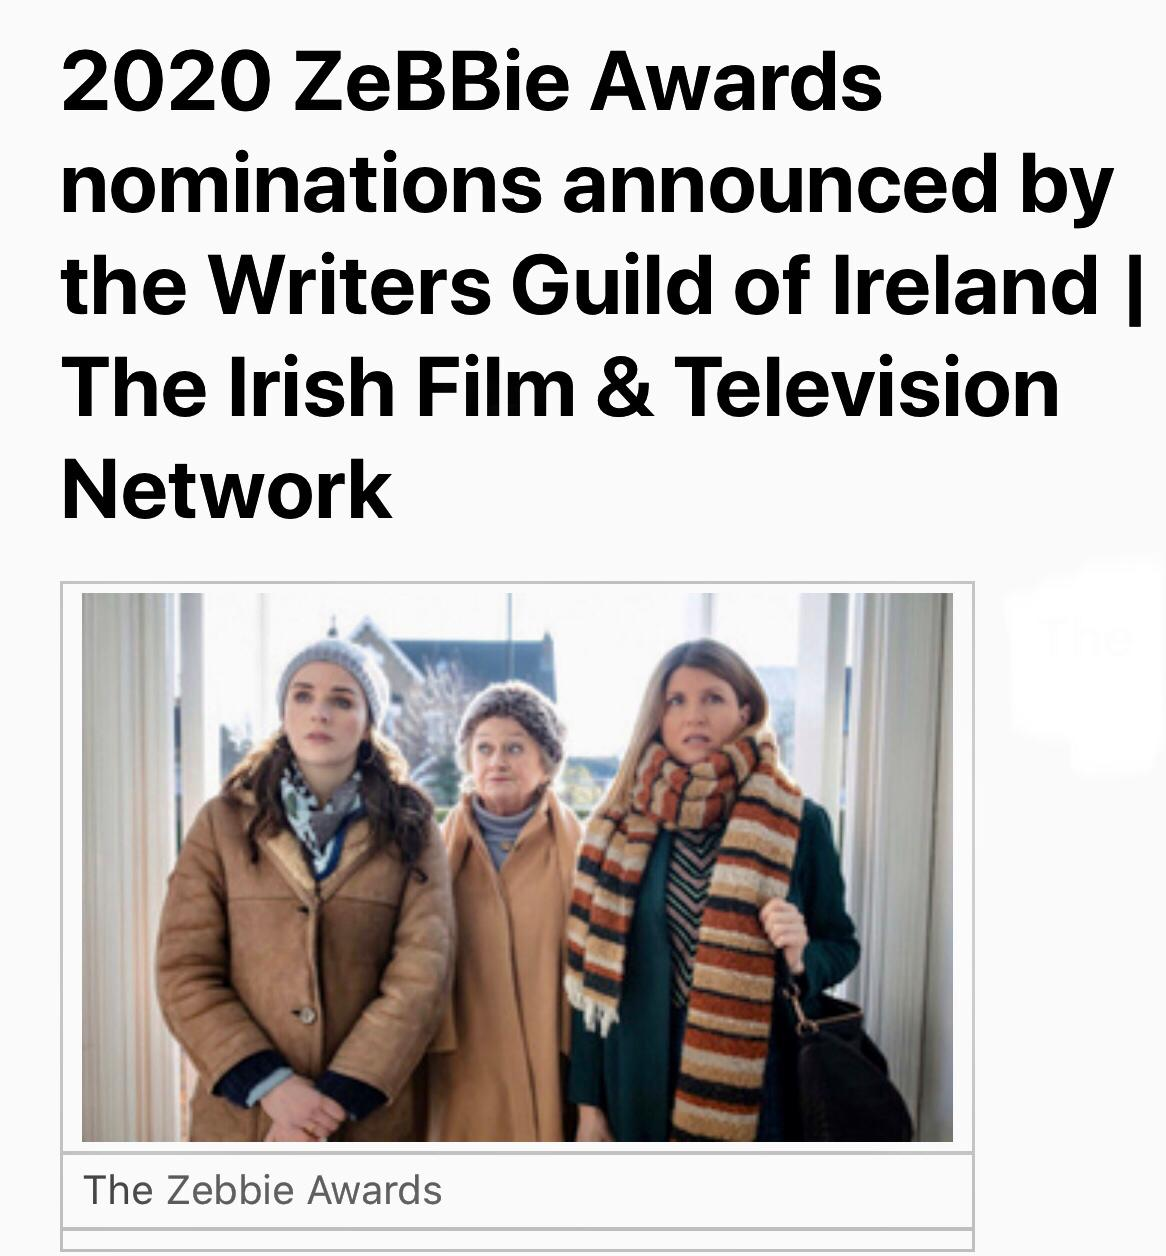 Writers Guild of Ireland Nomination for Best TV Script 2020  - October 7th, 2020